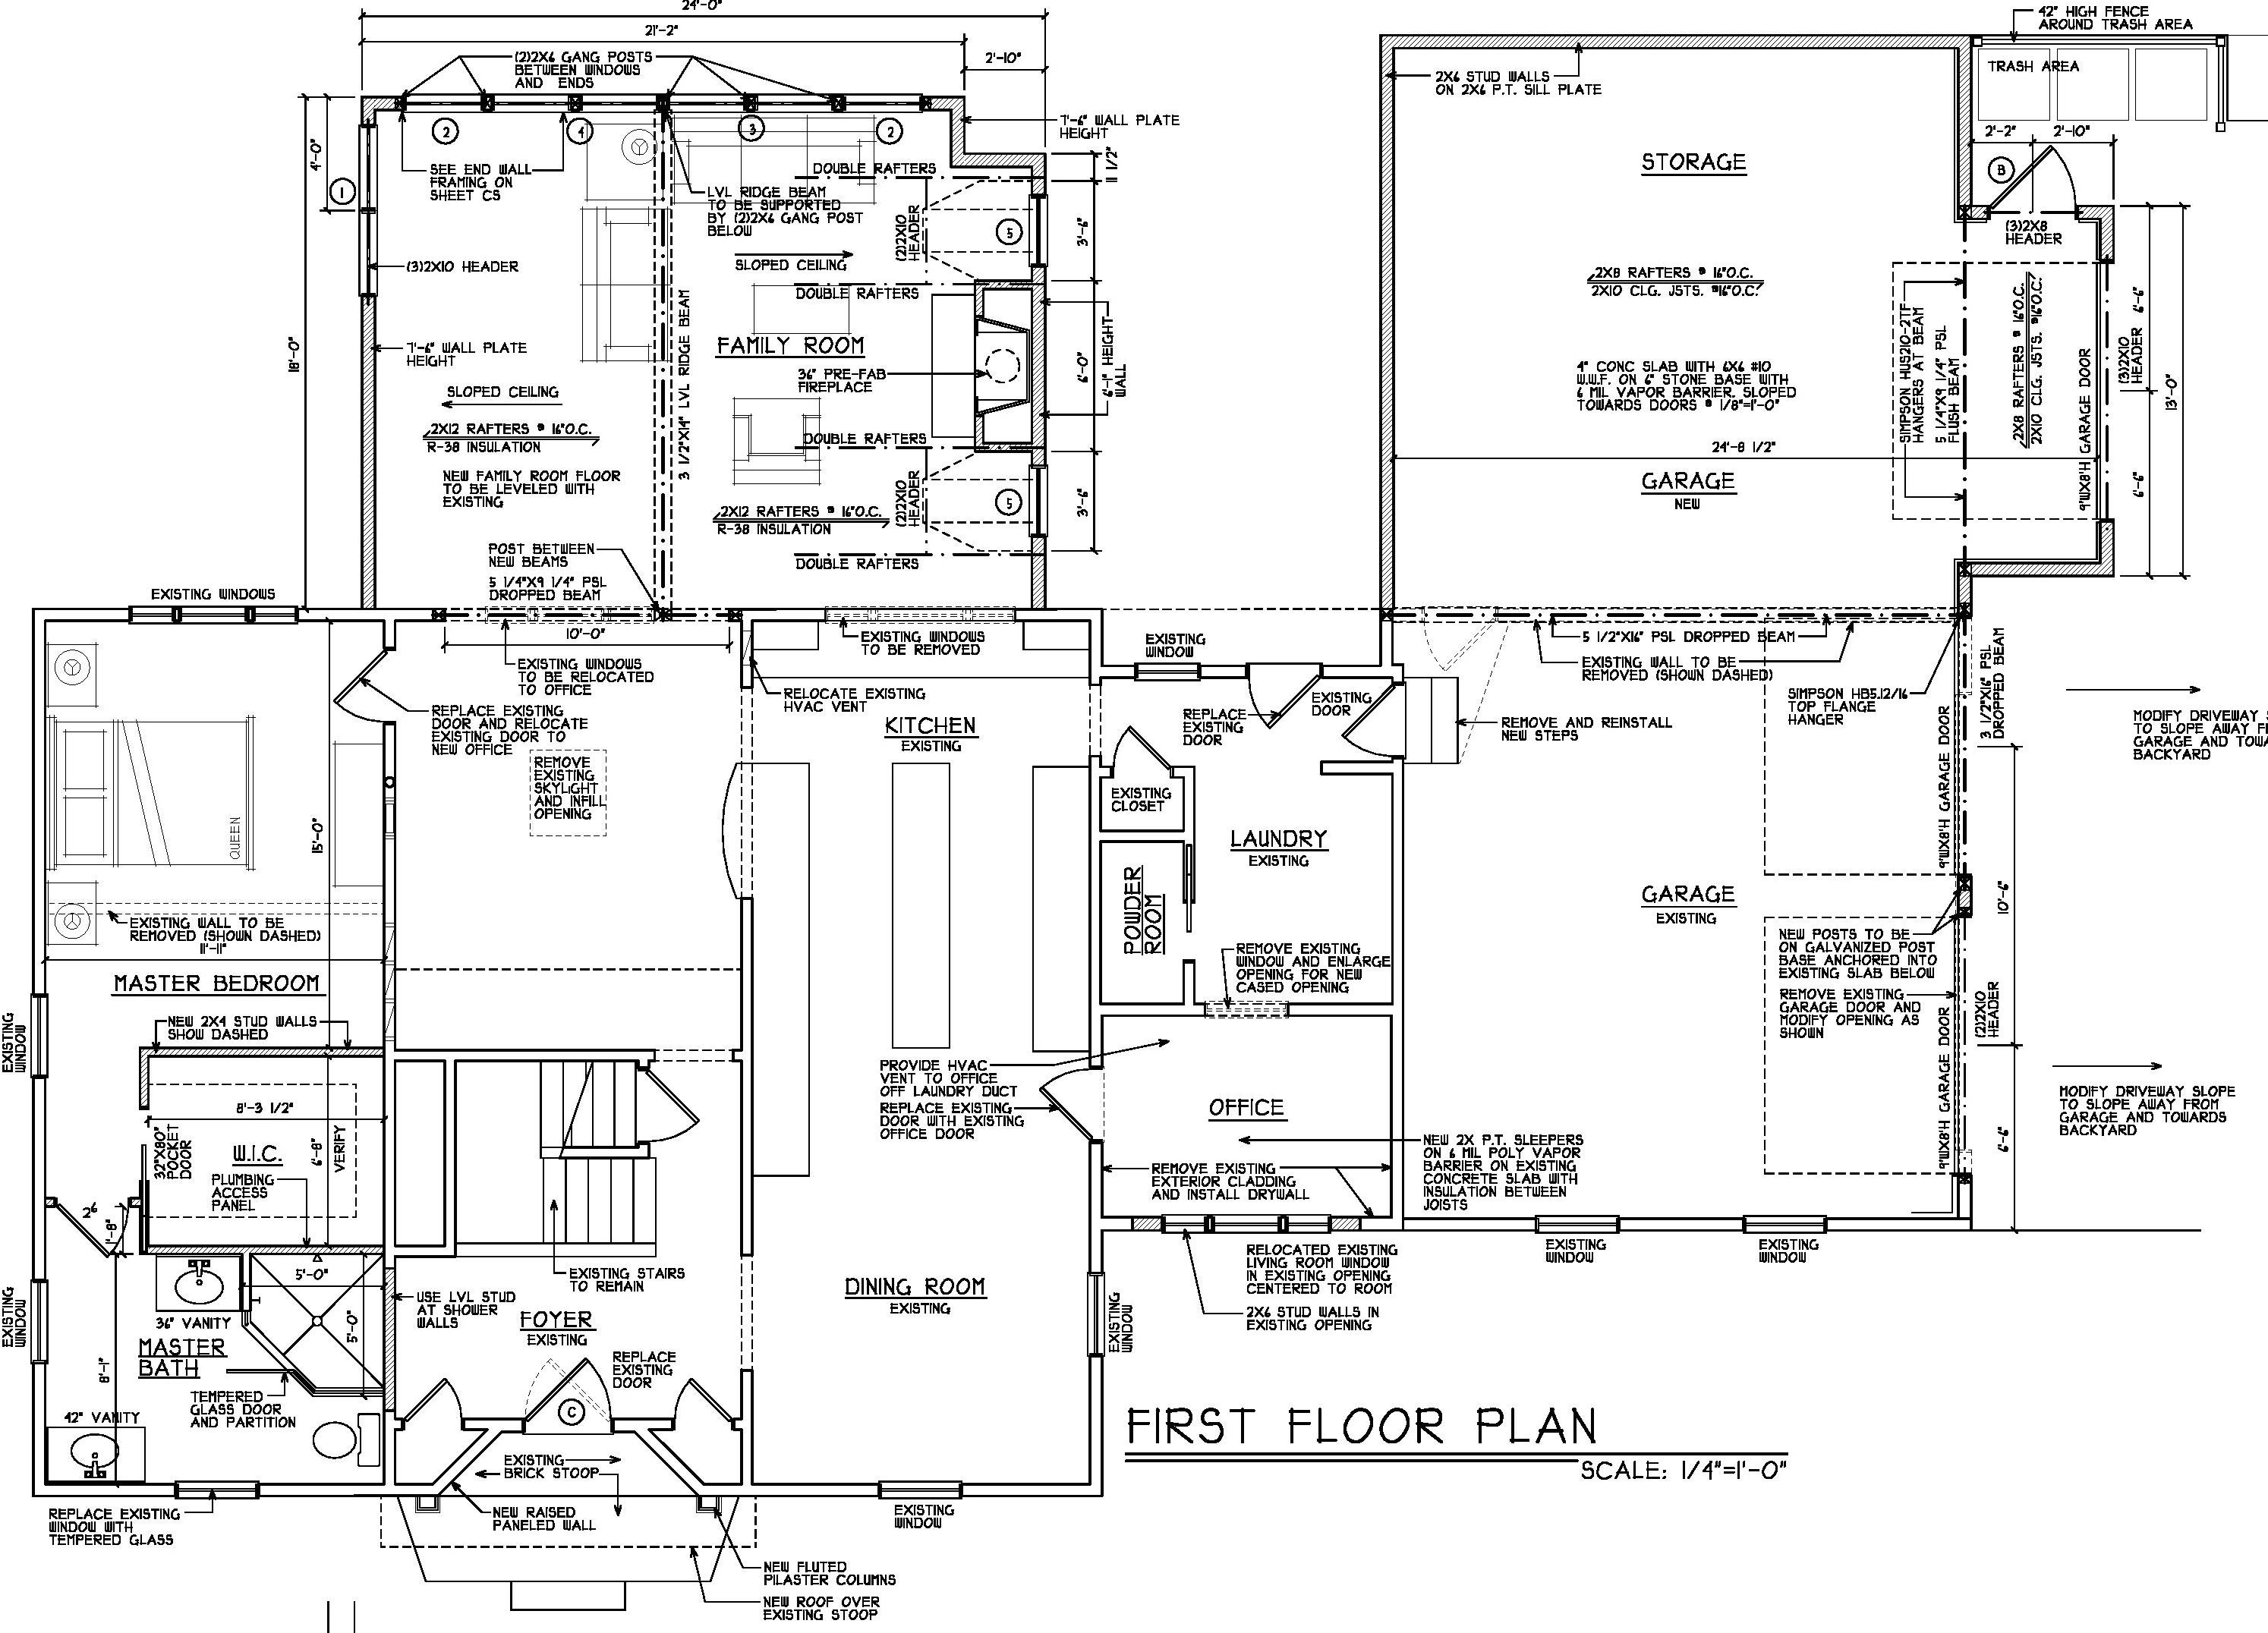 chester-county-additions-remodel-floorplan.jpg